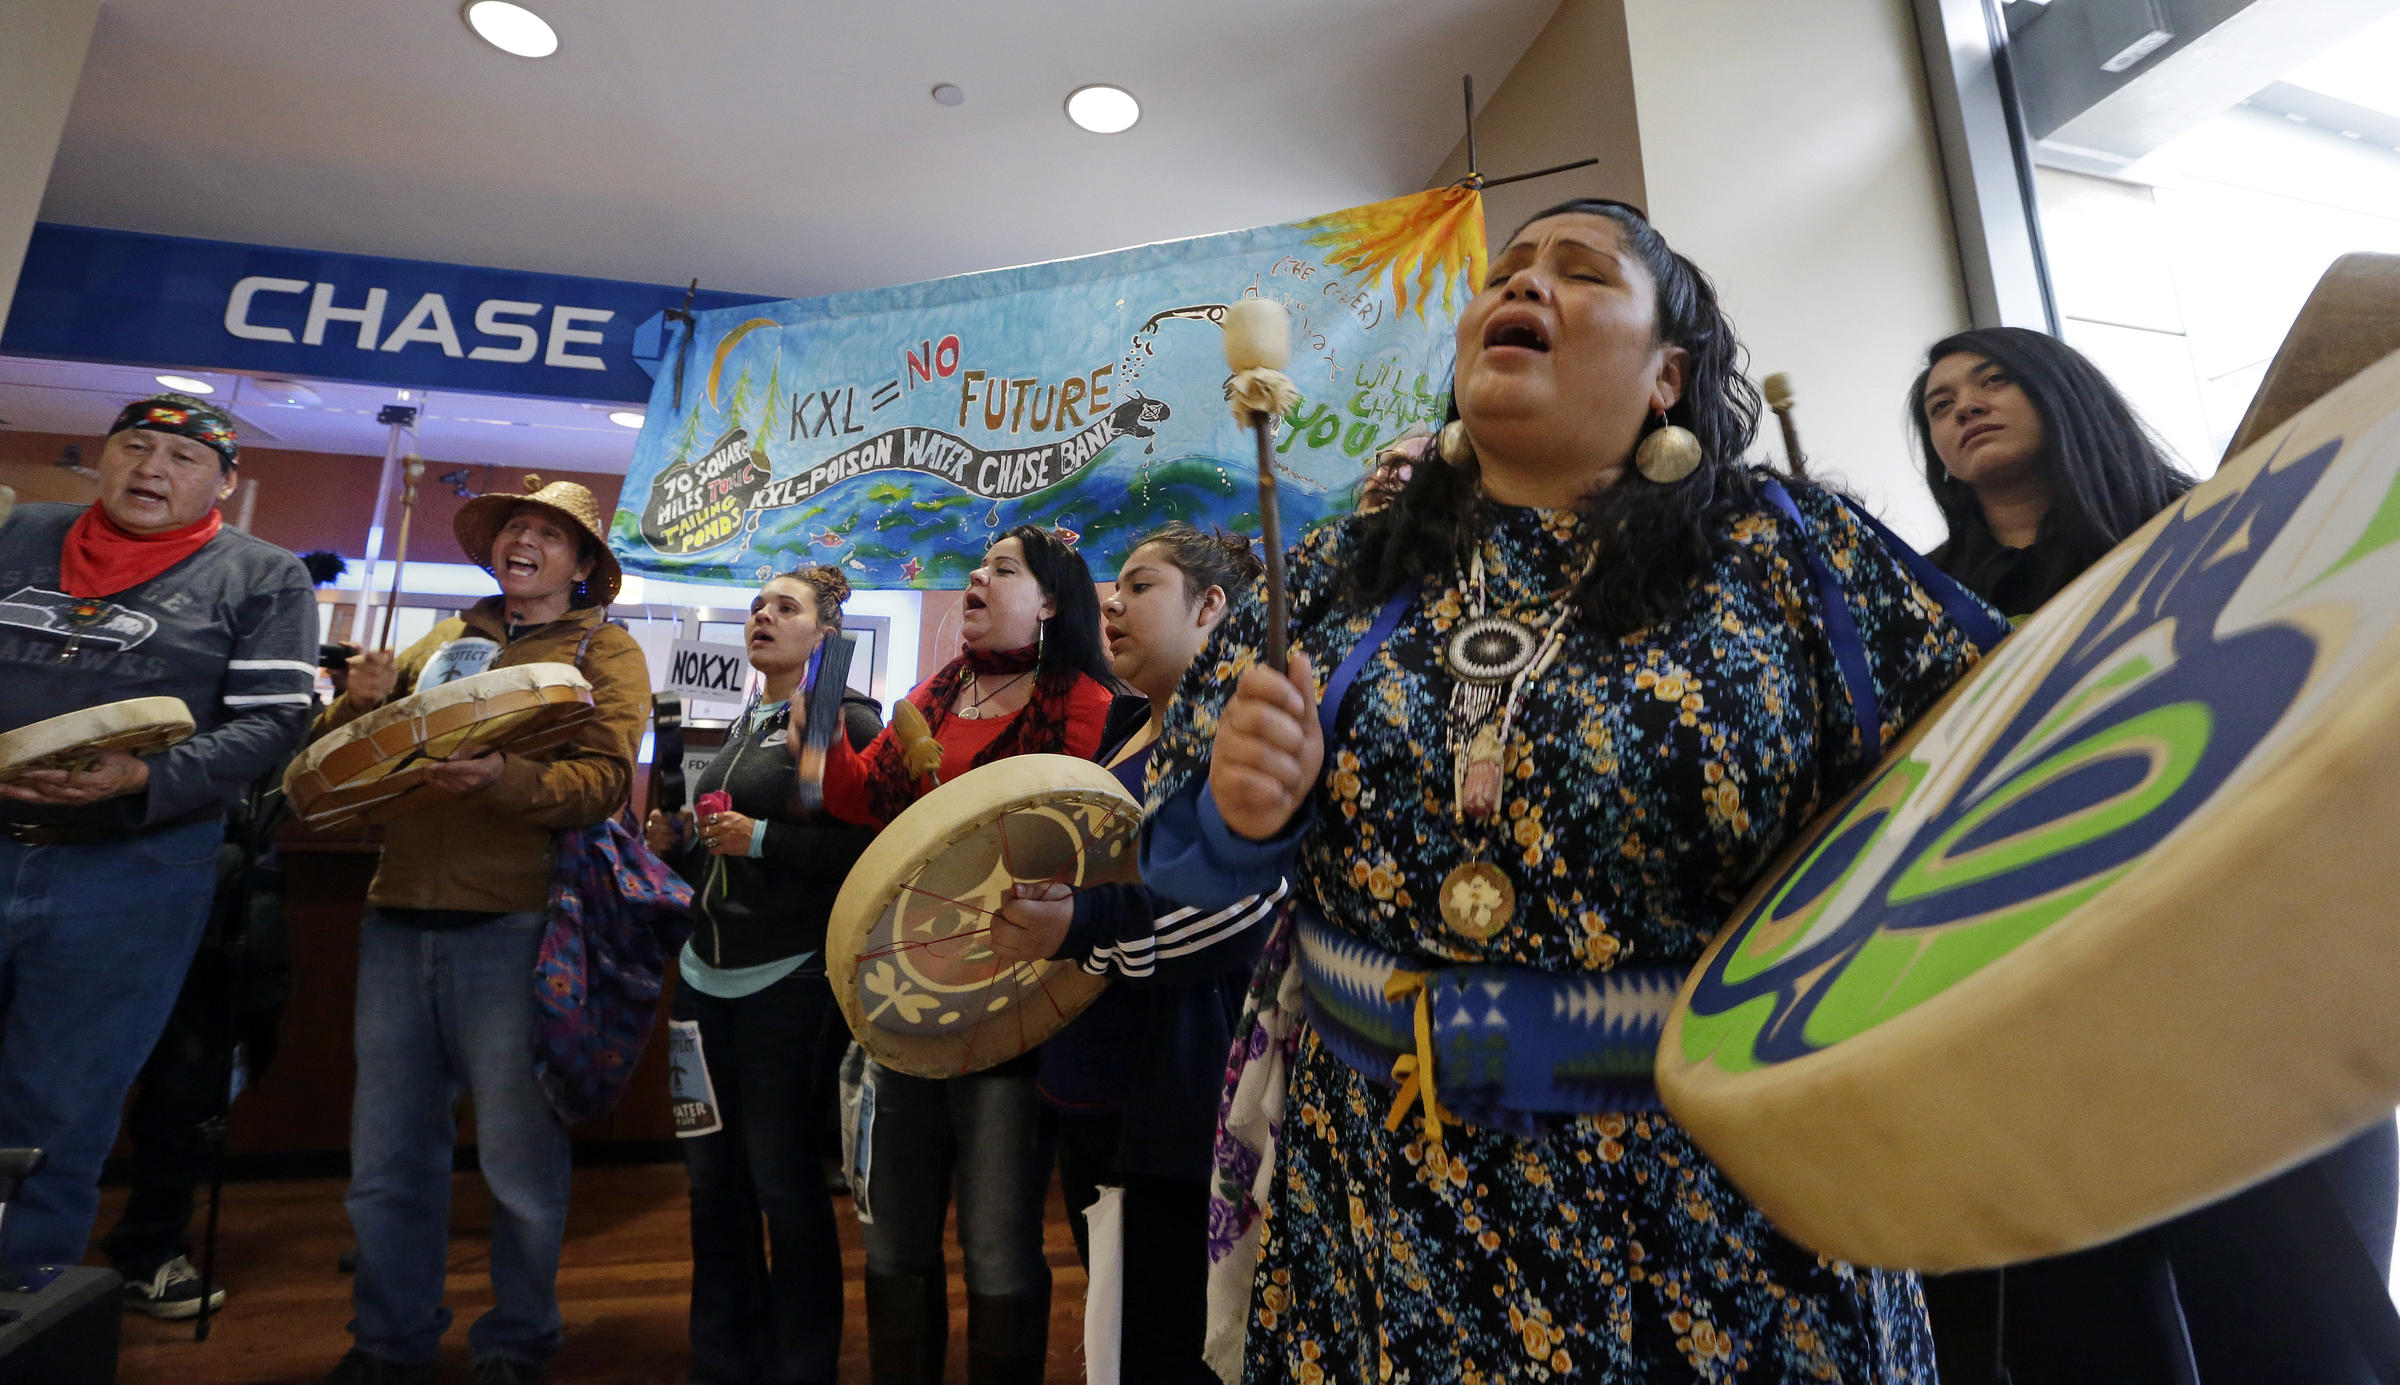 climate activists target jpmorgan chase banks in seattle knkx